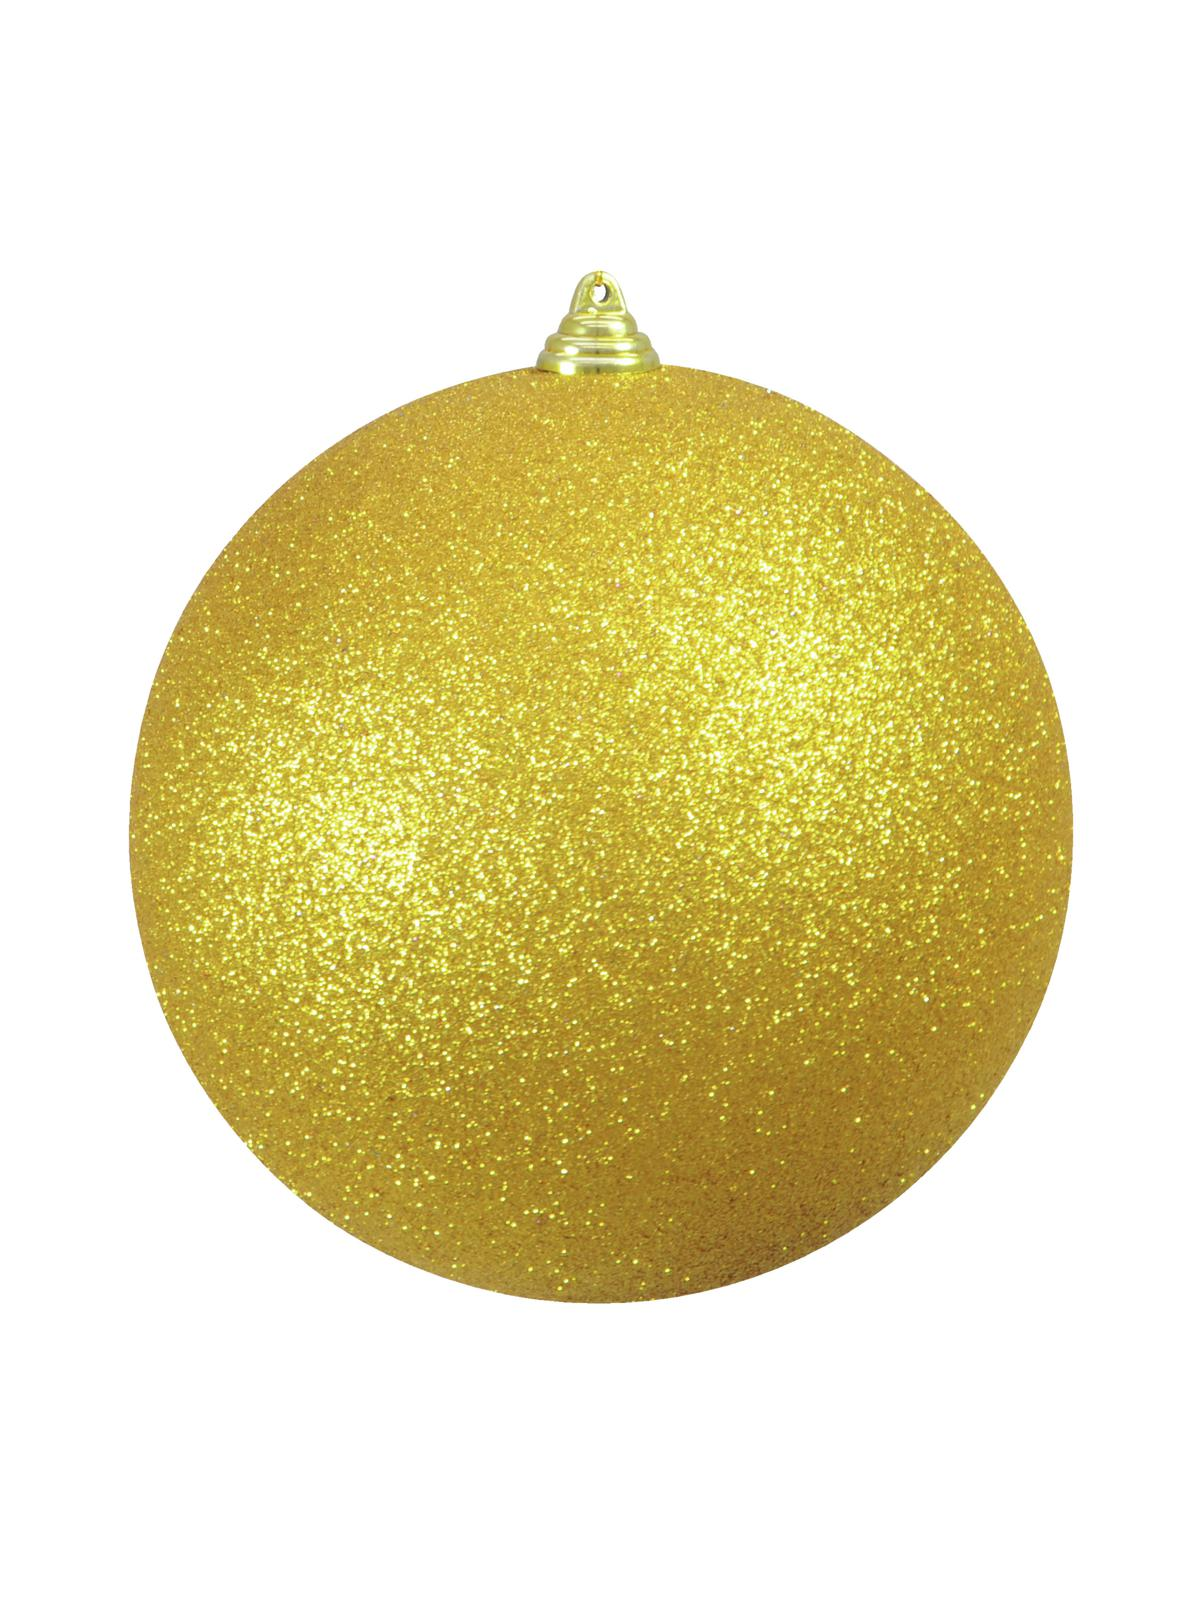 EUROPALMS Decoball 20cm, oro, glitter